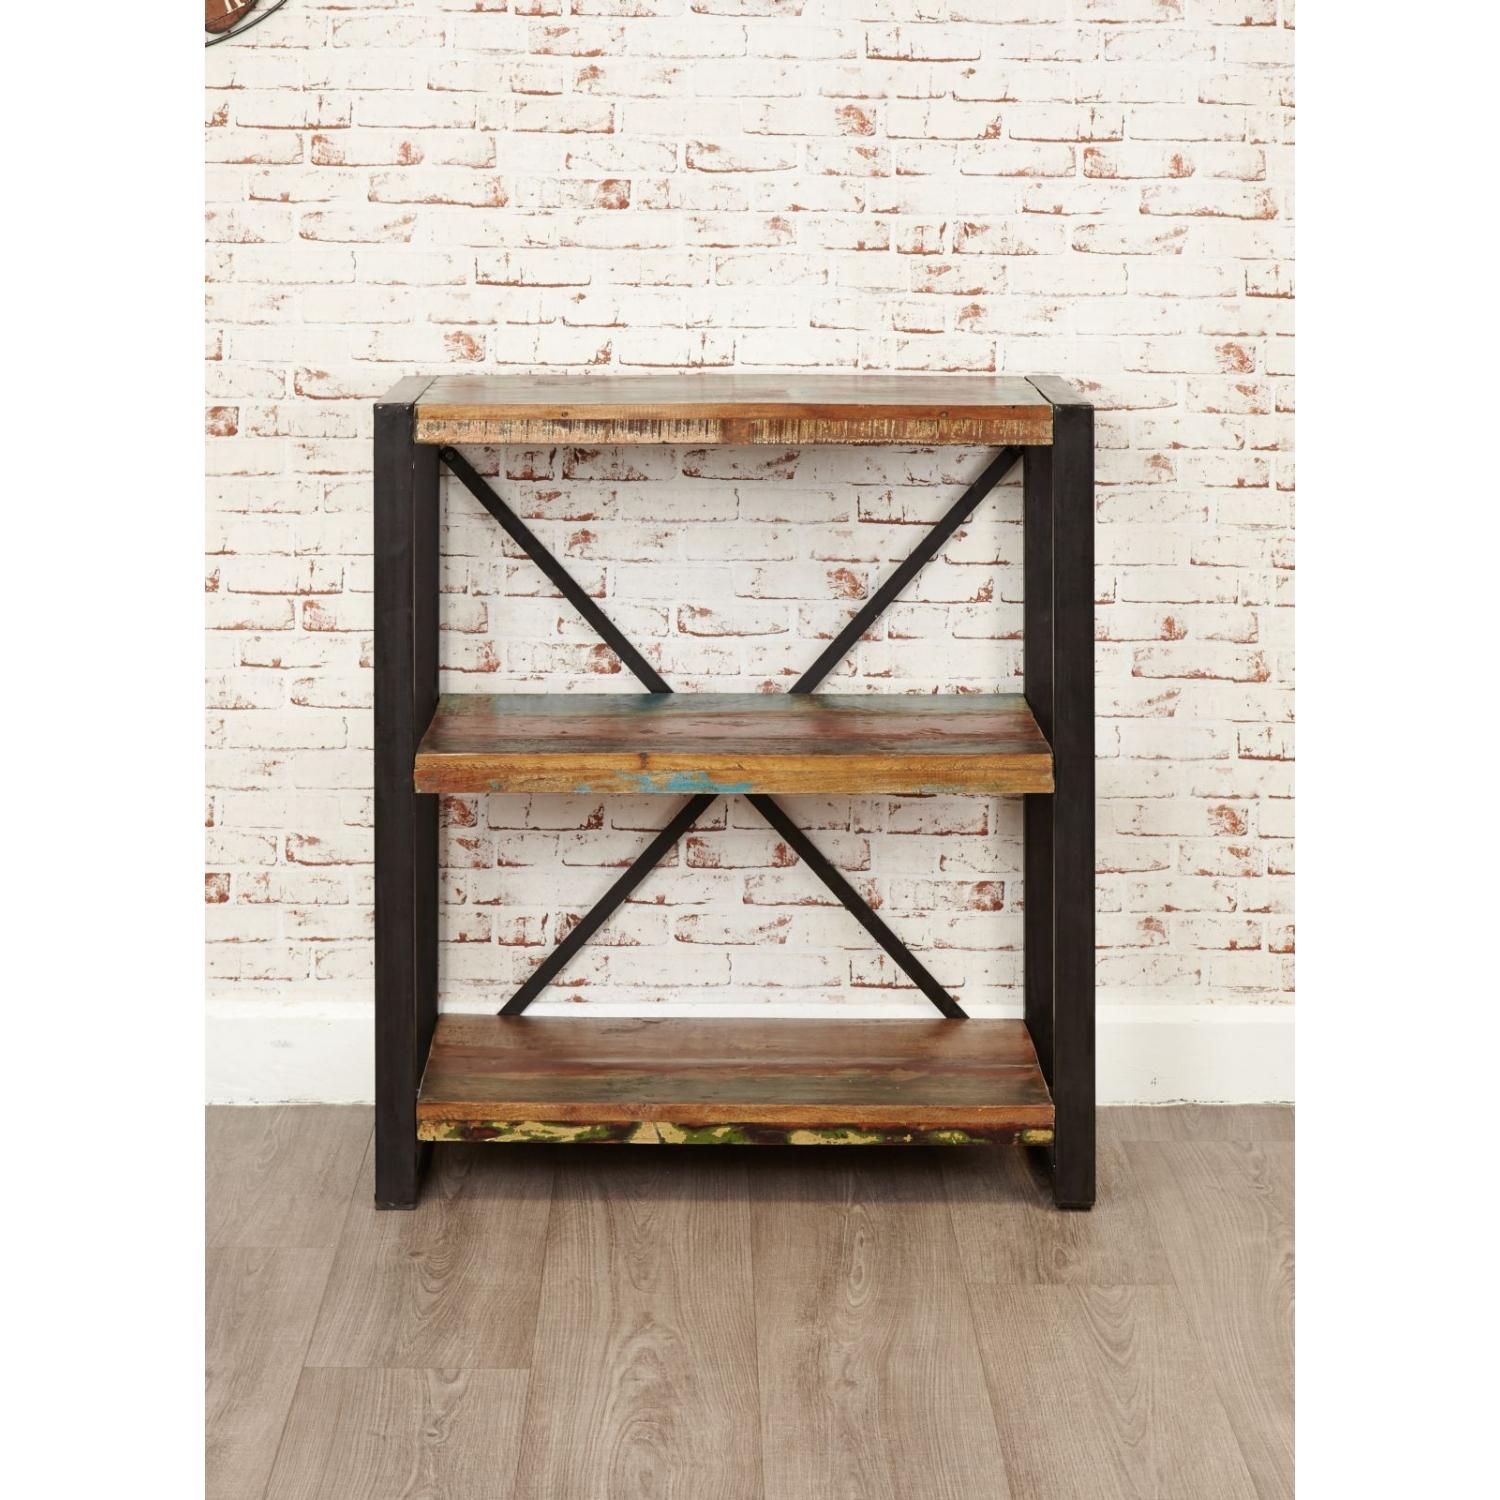 Details About Agra Reclaimed Wood Furniture Low Small Open Living Room Office Bookcase